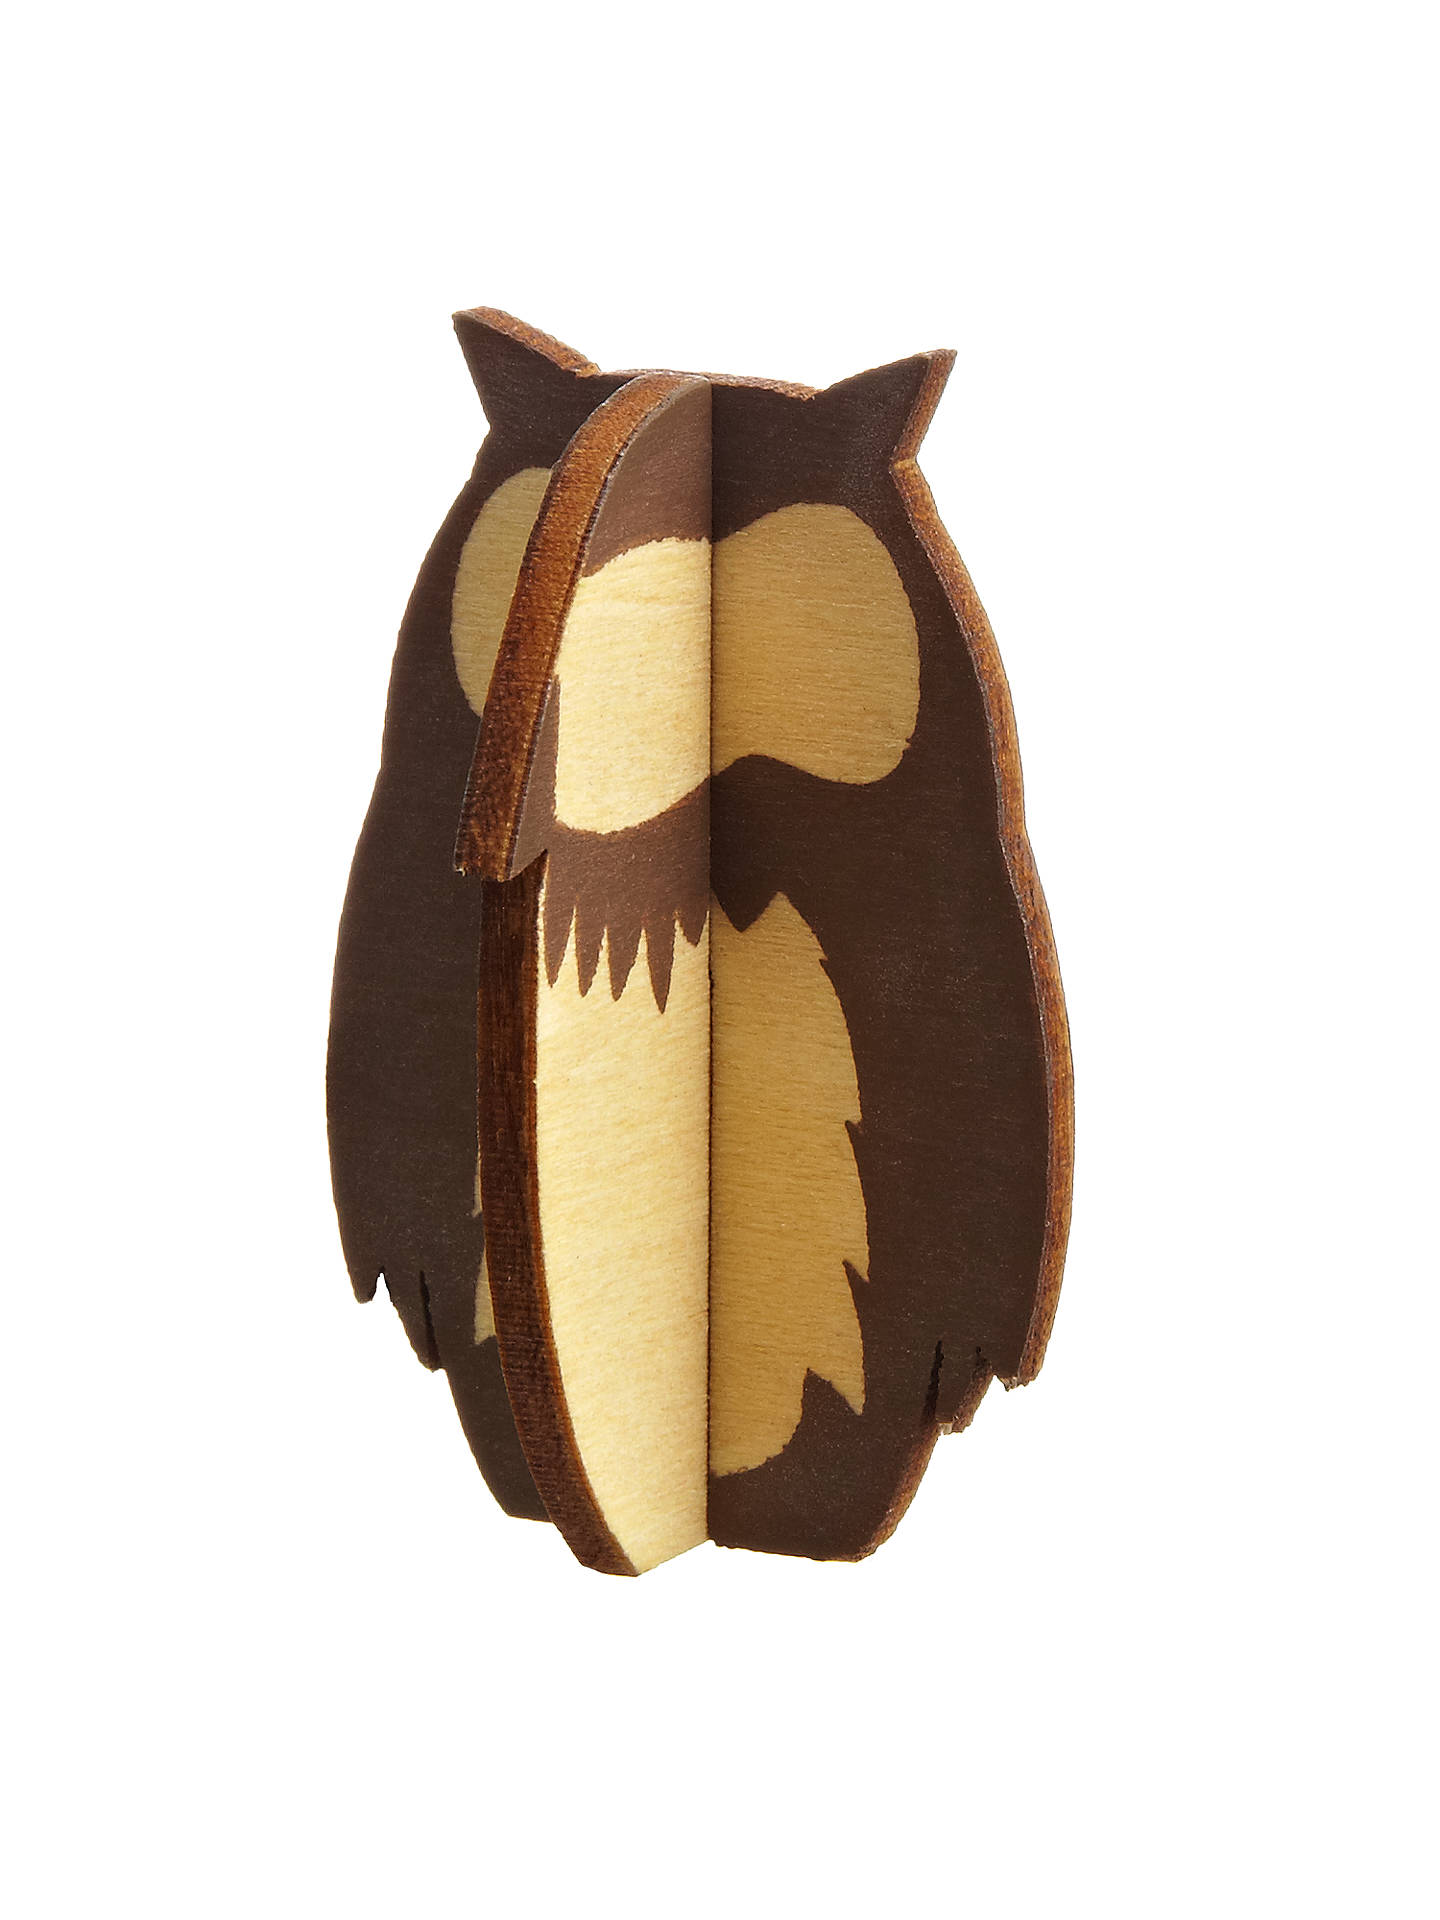 BuyDesign Ideas Woodland Owl Decorations, Set of 8 Online at johnlewis.com